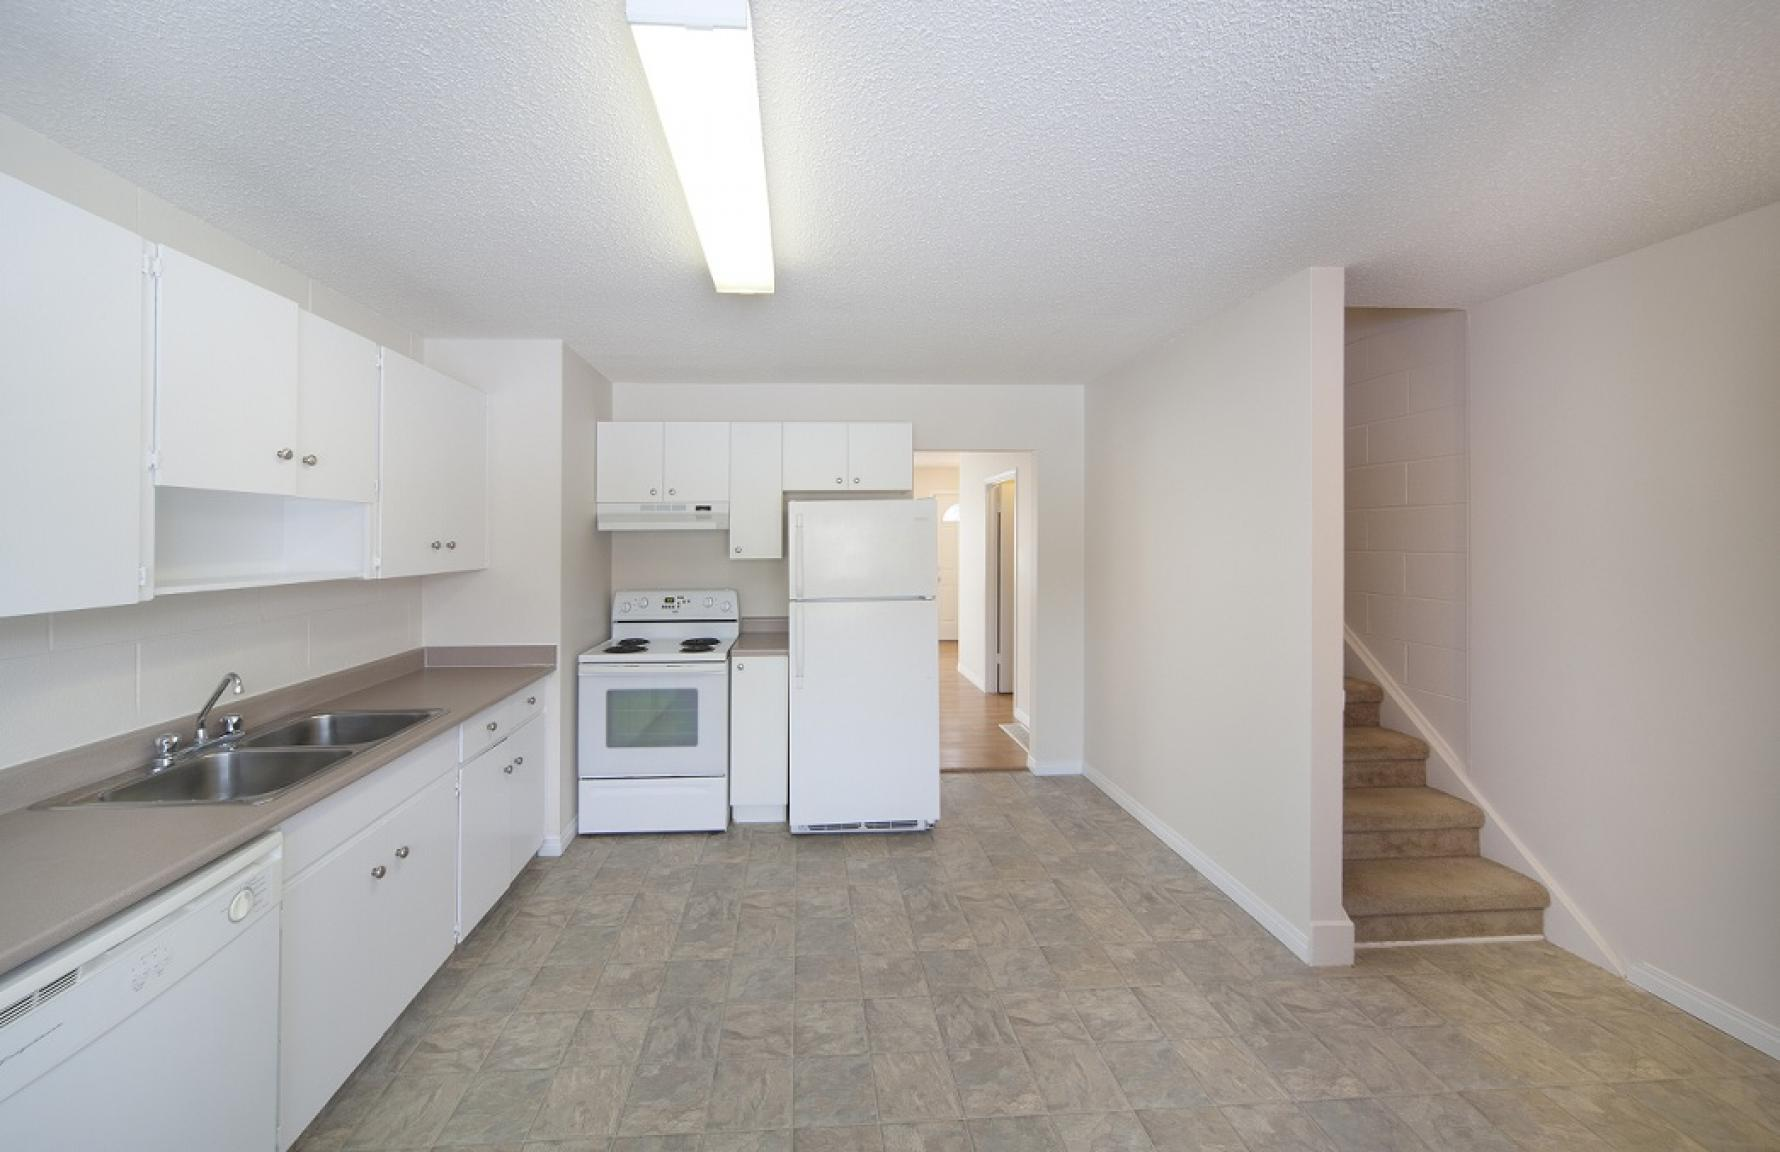 Pleasantview Townhomes Apartments Photo #1